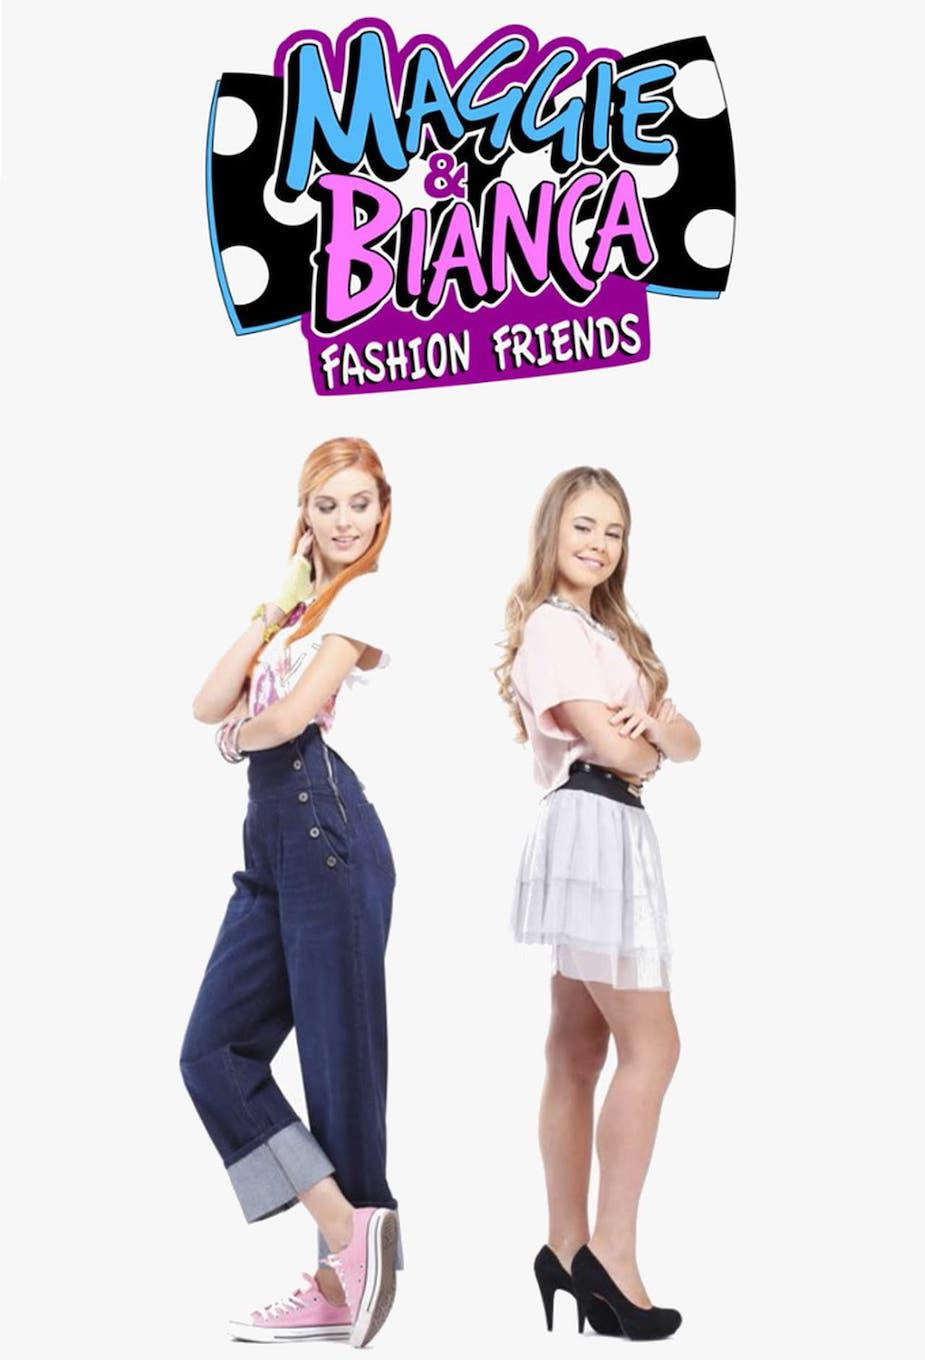 Maggie & Bianca: Fashion Friends